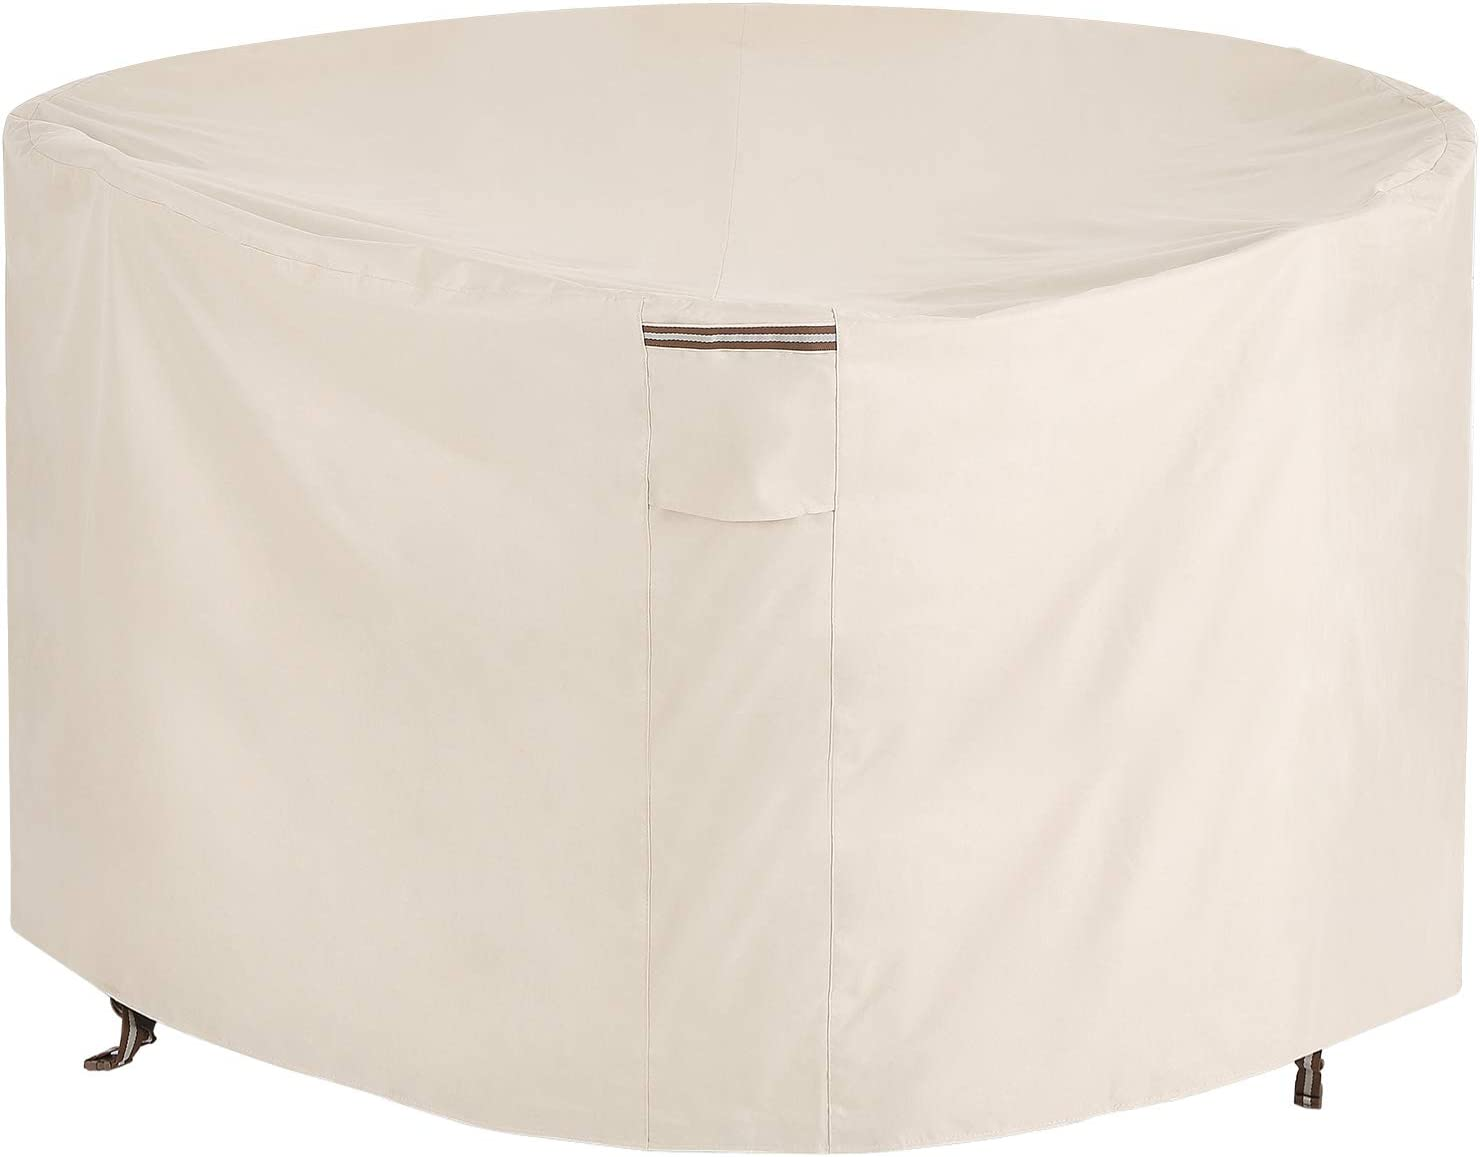 SONGMICS Tucson Mall Fire Pit Cover 600D Memphis Mall Round Tabl Oxford Fabric